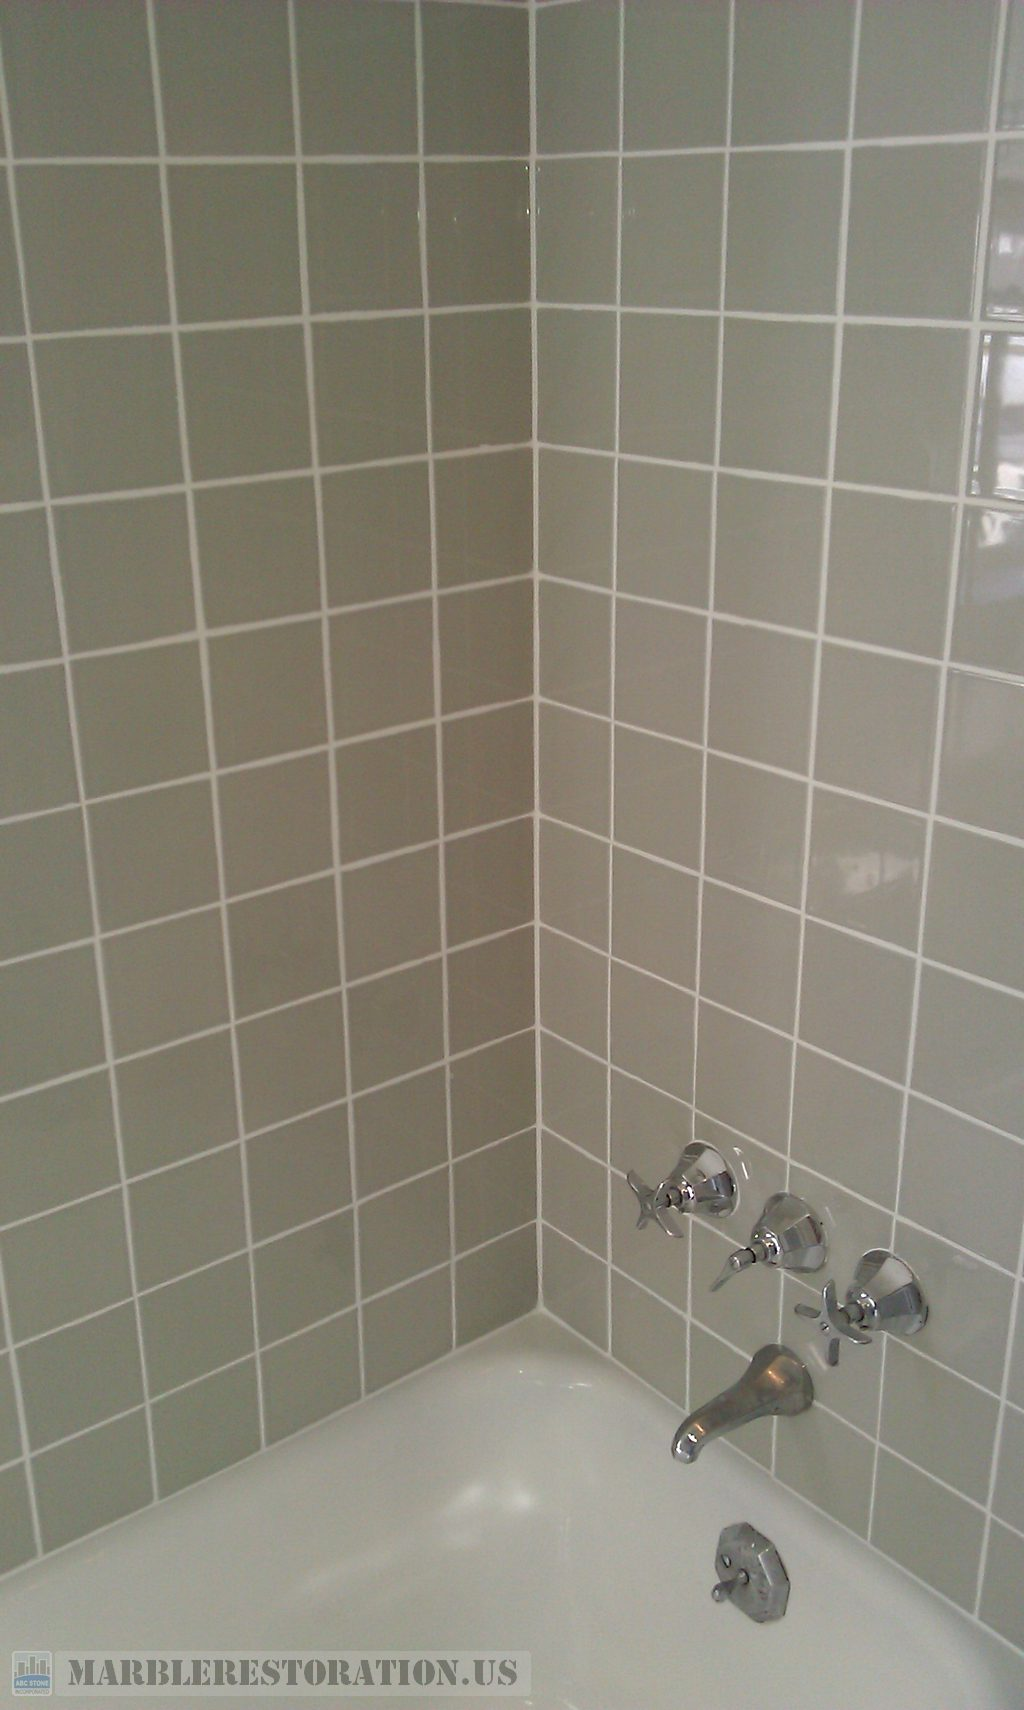 Ceramic Bathtub Tiled Walls After Regrouting Recaulking